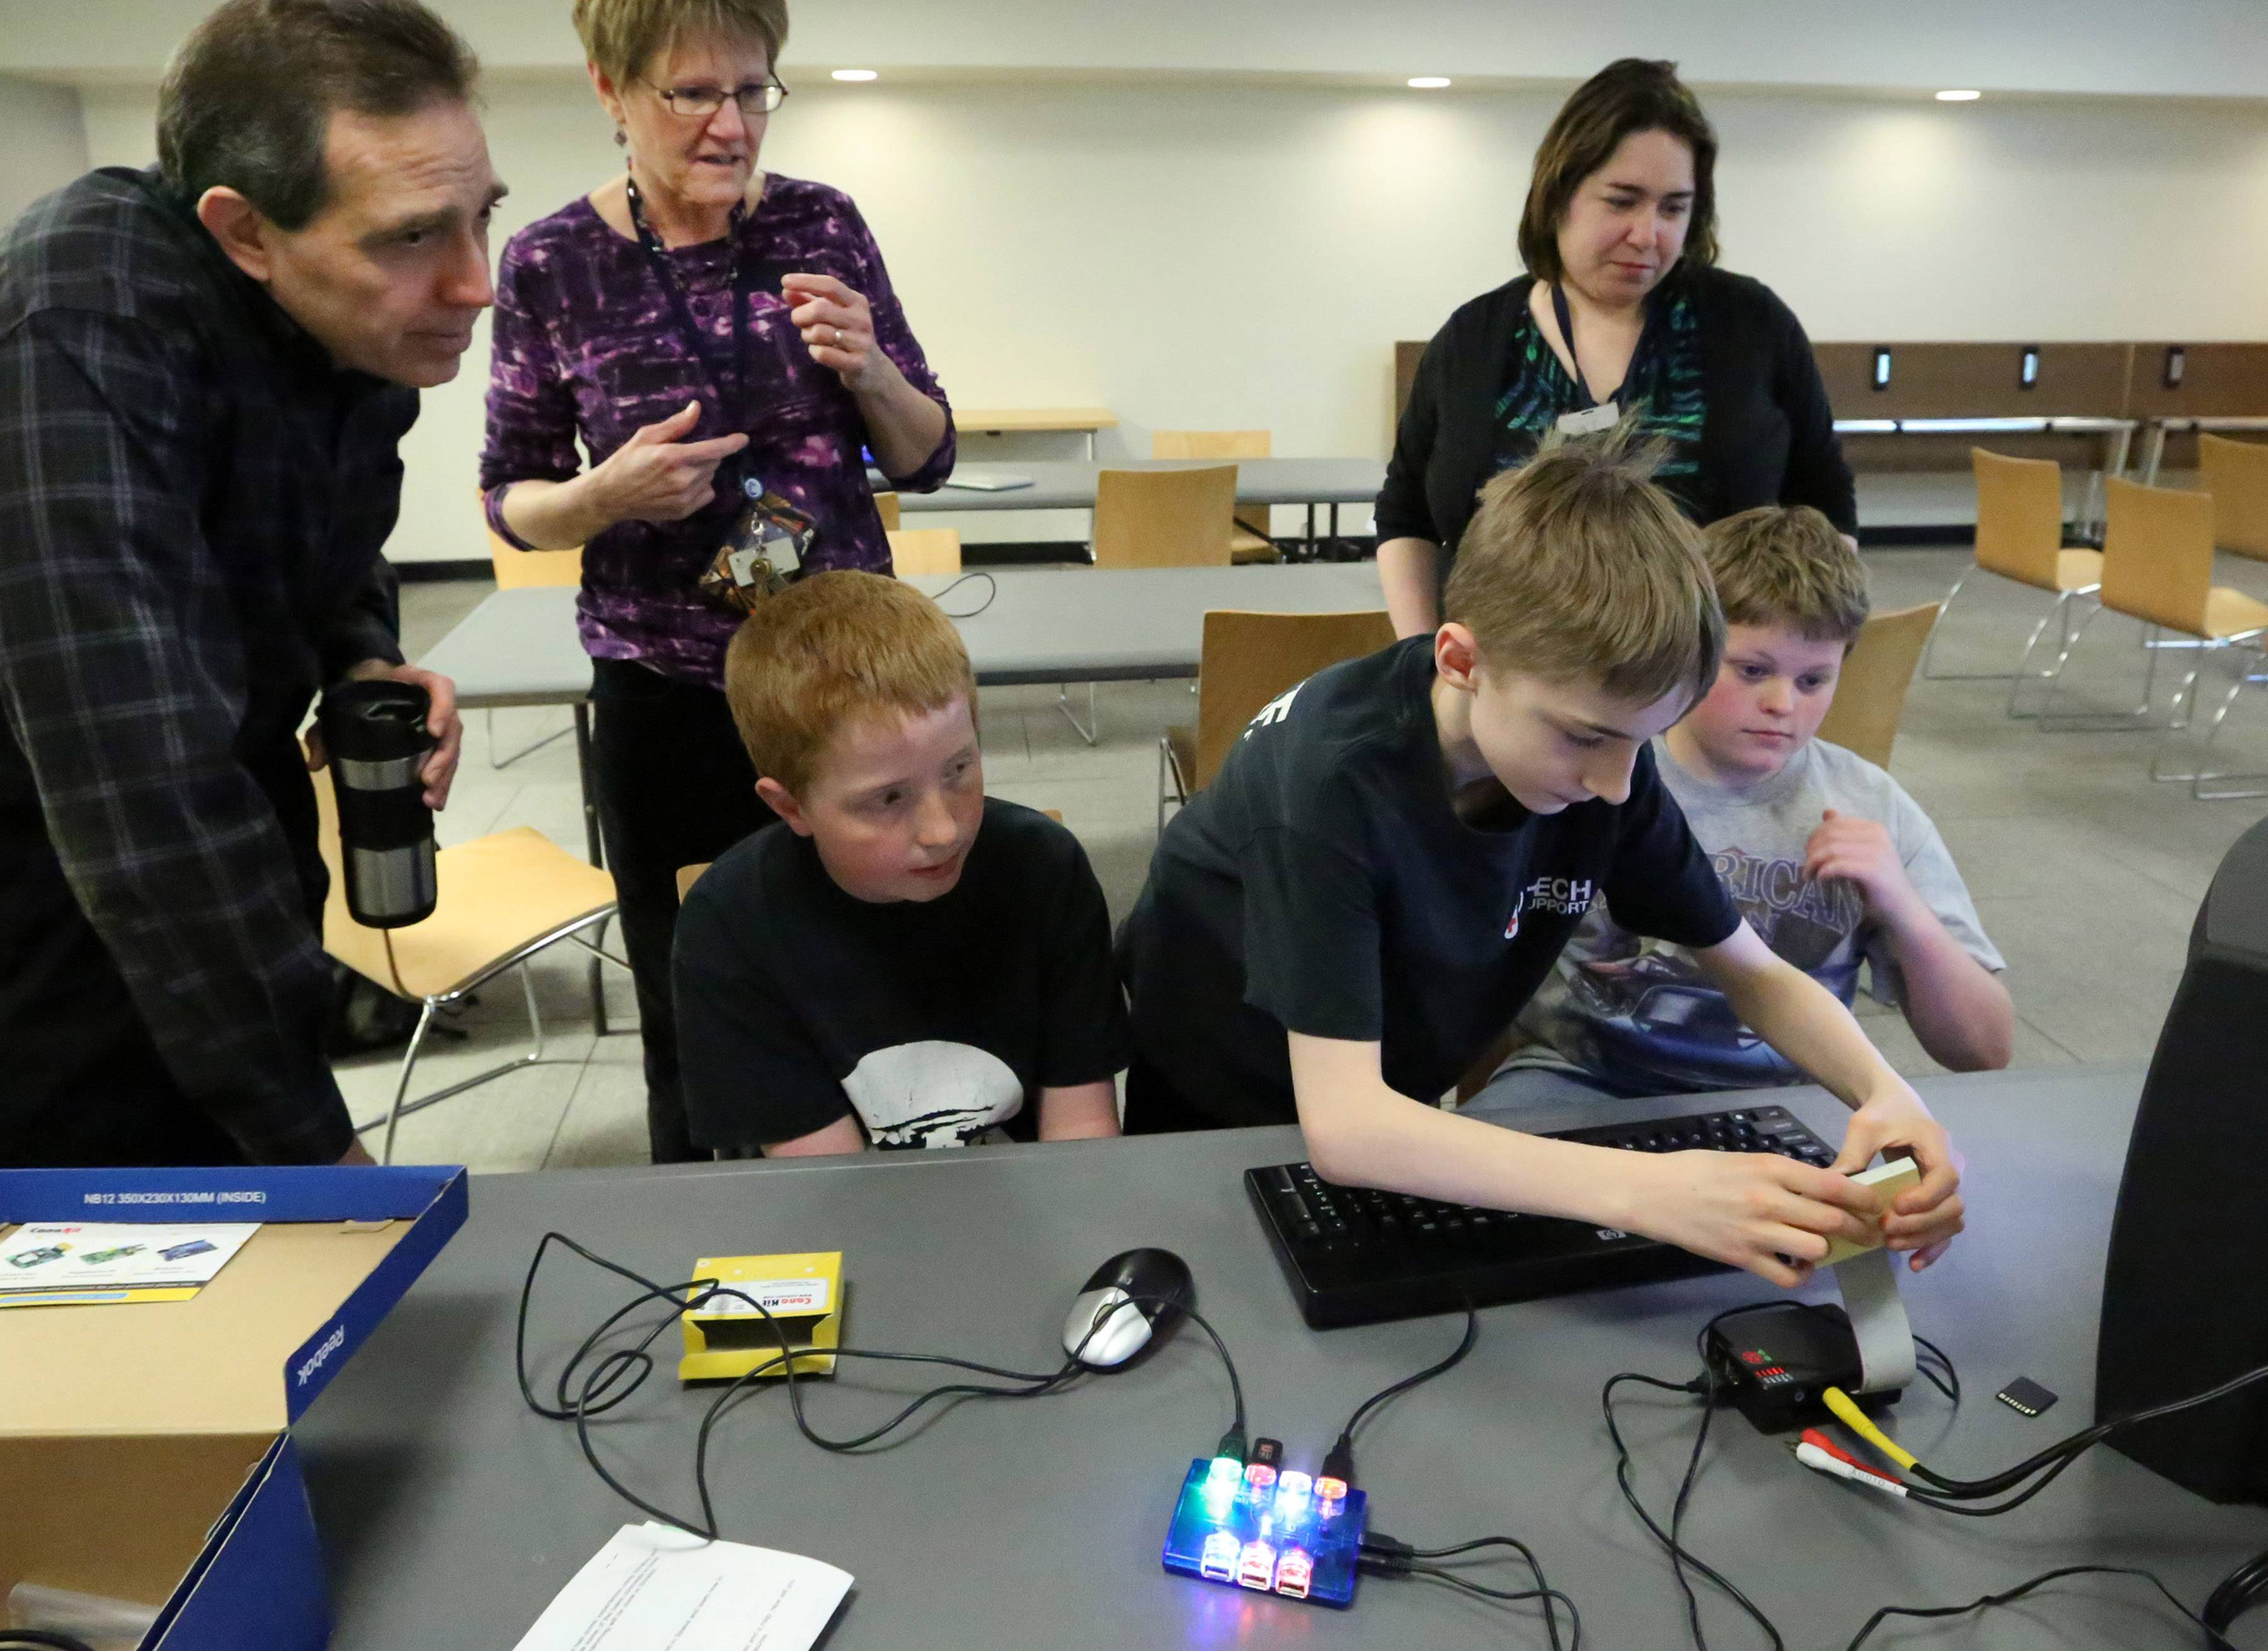 "Andy Merrill, 13, of Libertyville, connects a monitor and keyboard to a Raspberry Pi, a credit-card sized computer, during a teen program called ""Teen Tinkers and Minecraft"" at Cook Park Library. With him, left to right standing, are Russ Cerqua, the library's business manager, Ellen Jennings, teen librarian, and Heather Beverley, assistant manager in the children's department, along with members of the teen group."